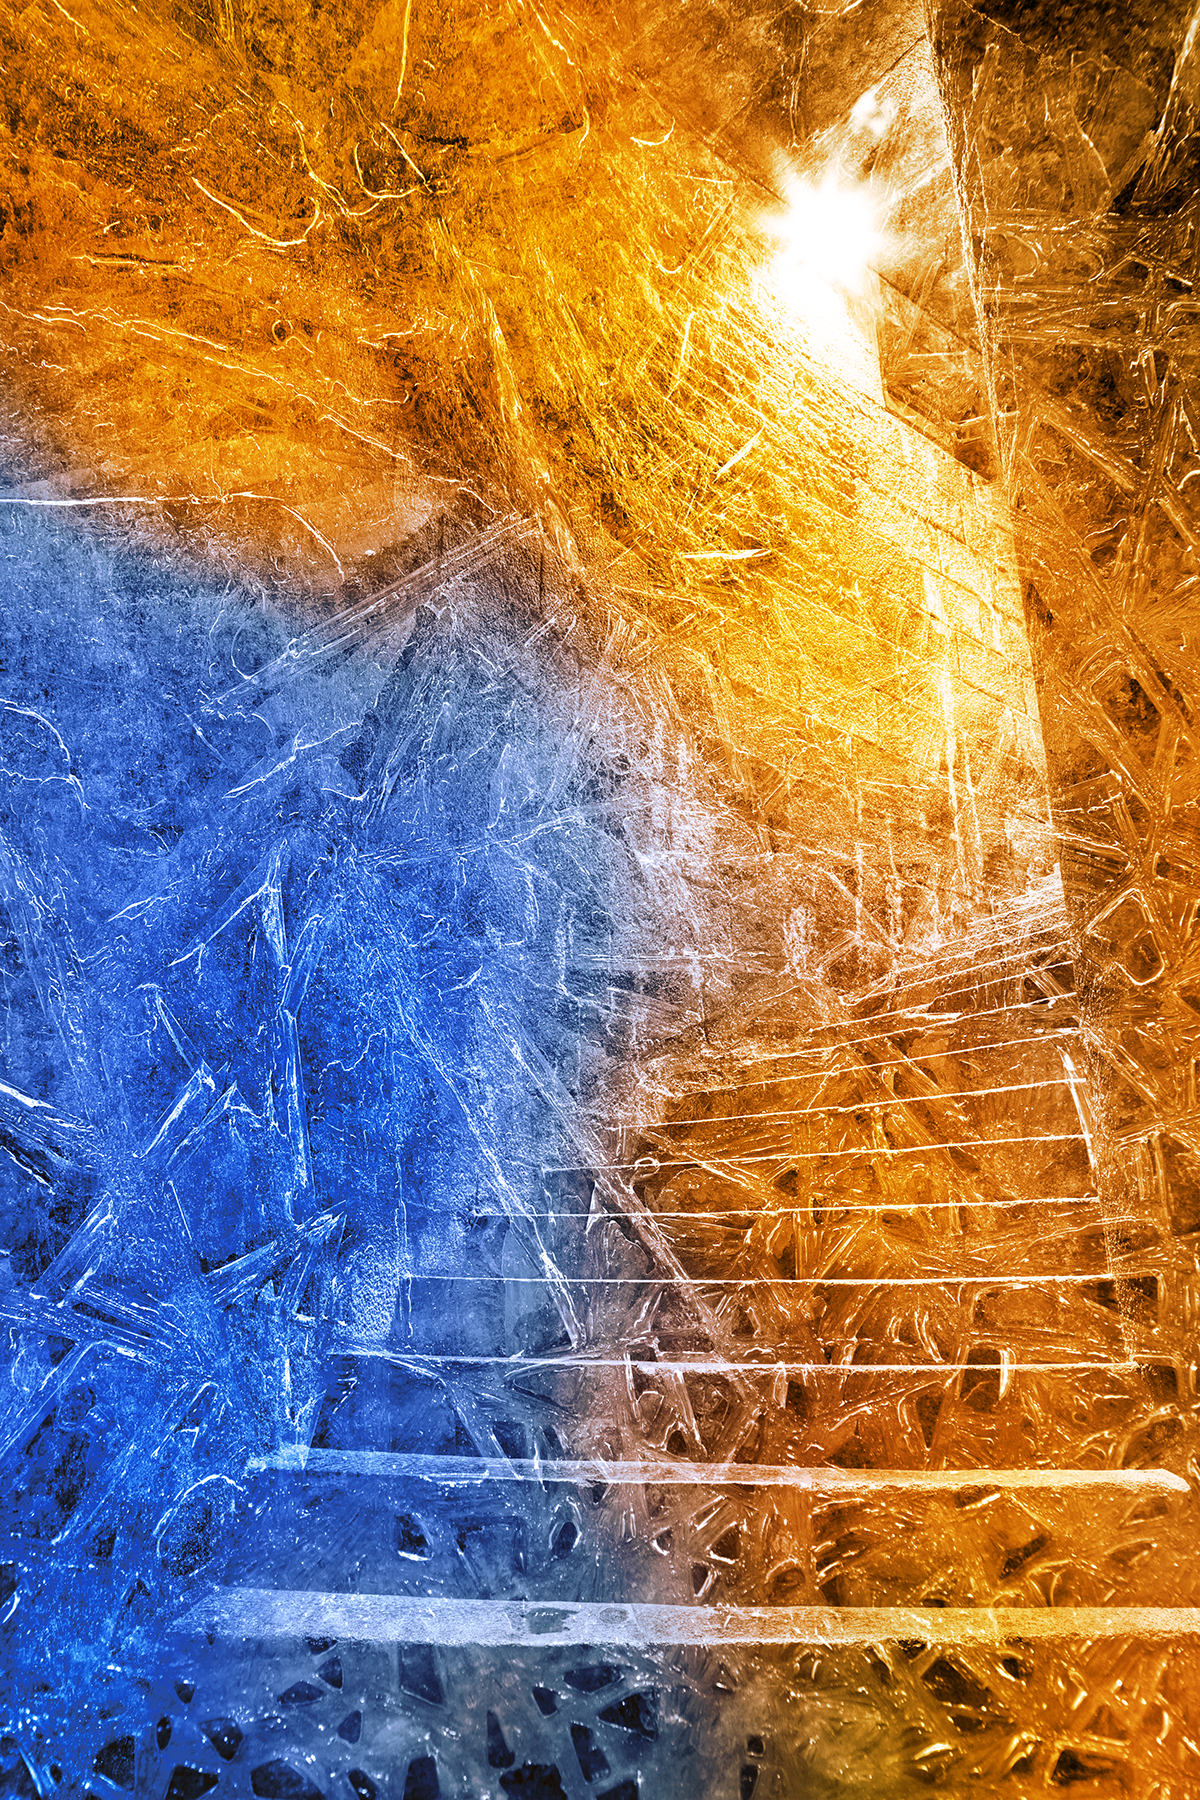 Stairway to Frozen Enlightenment, Abstract, Lights, Rough, Raw, HQ Photo